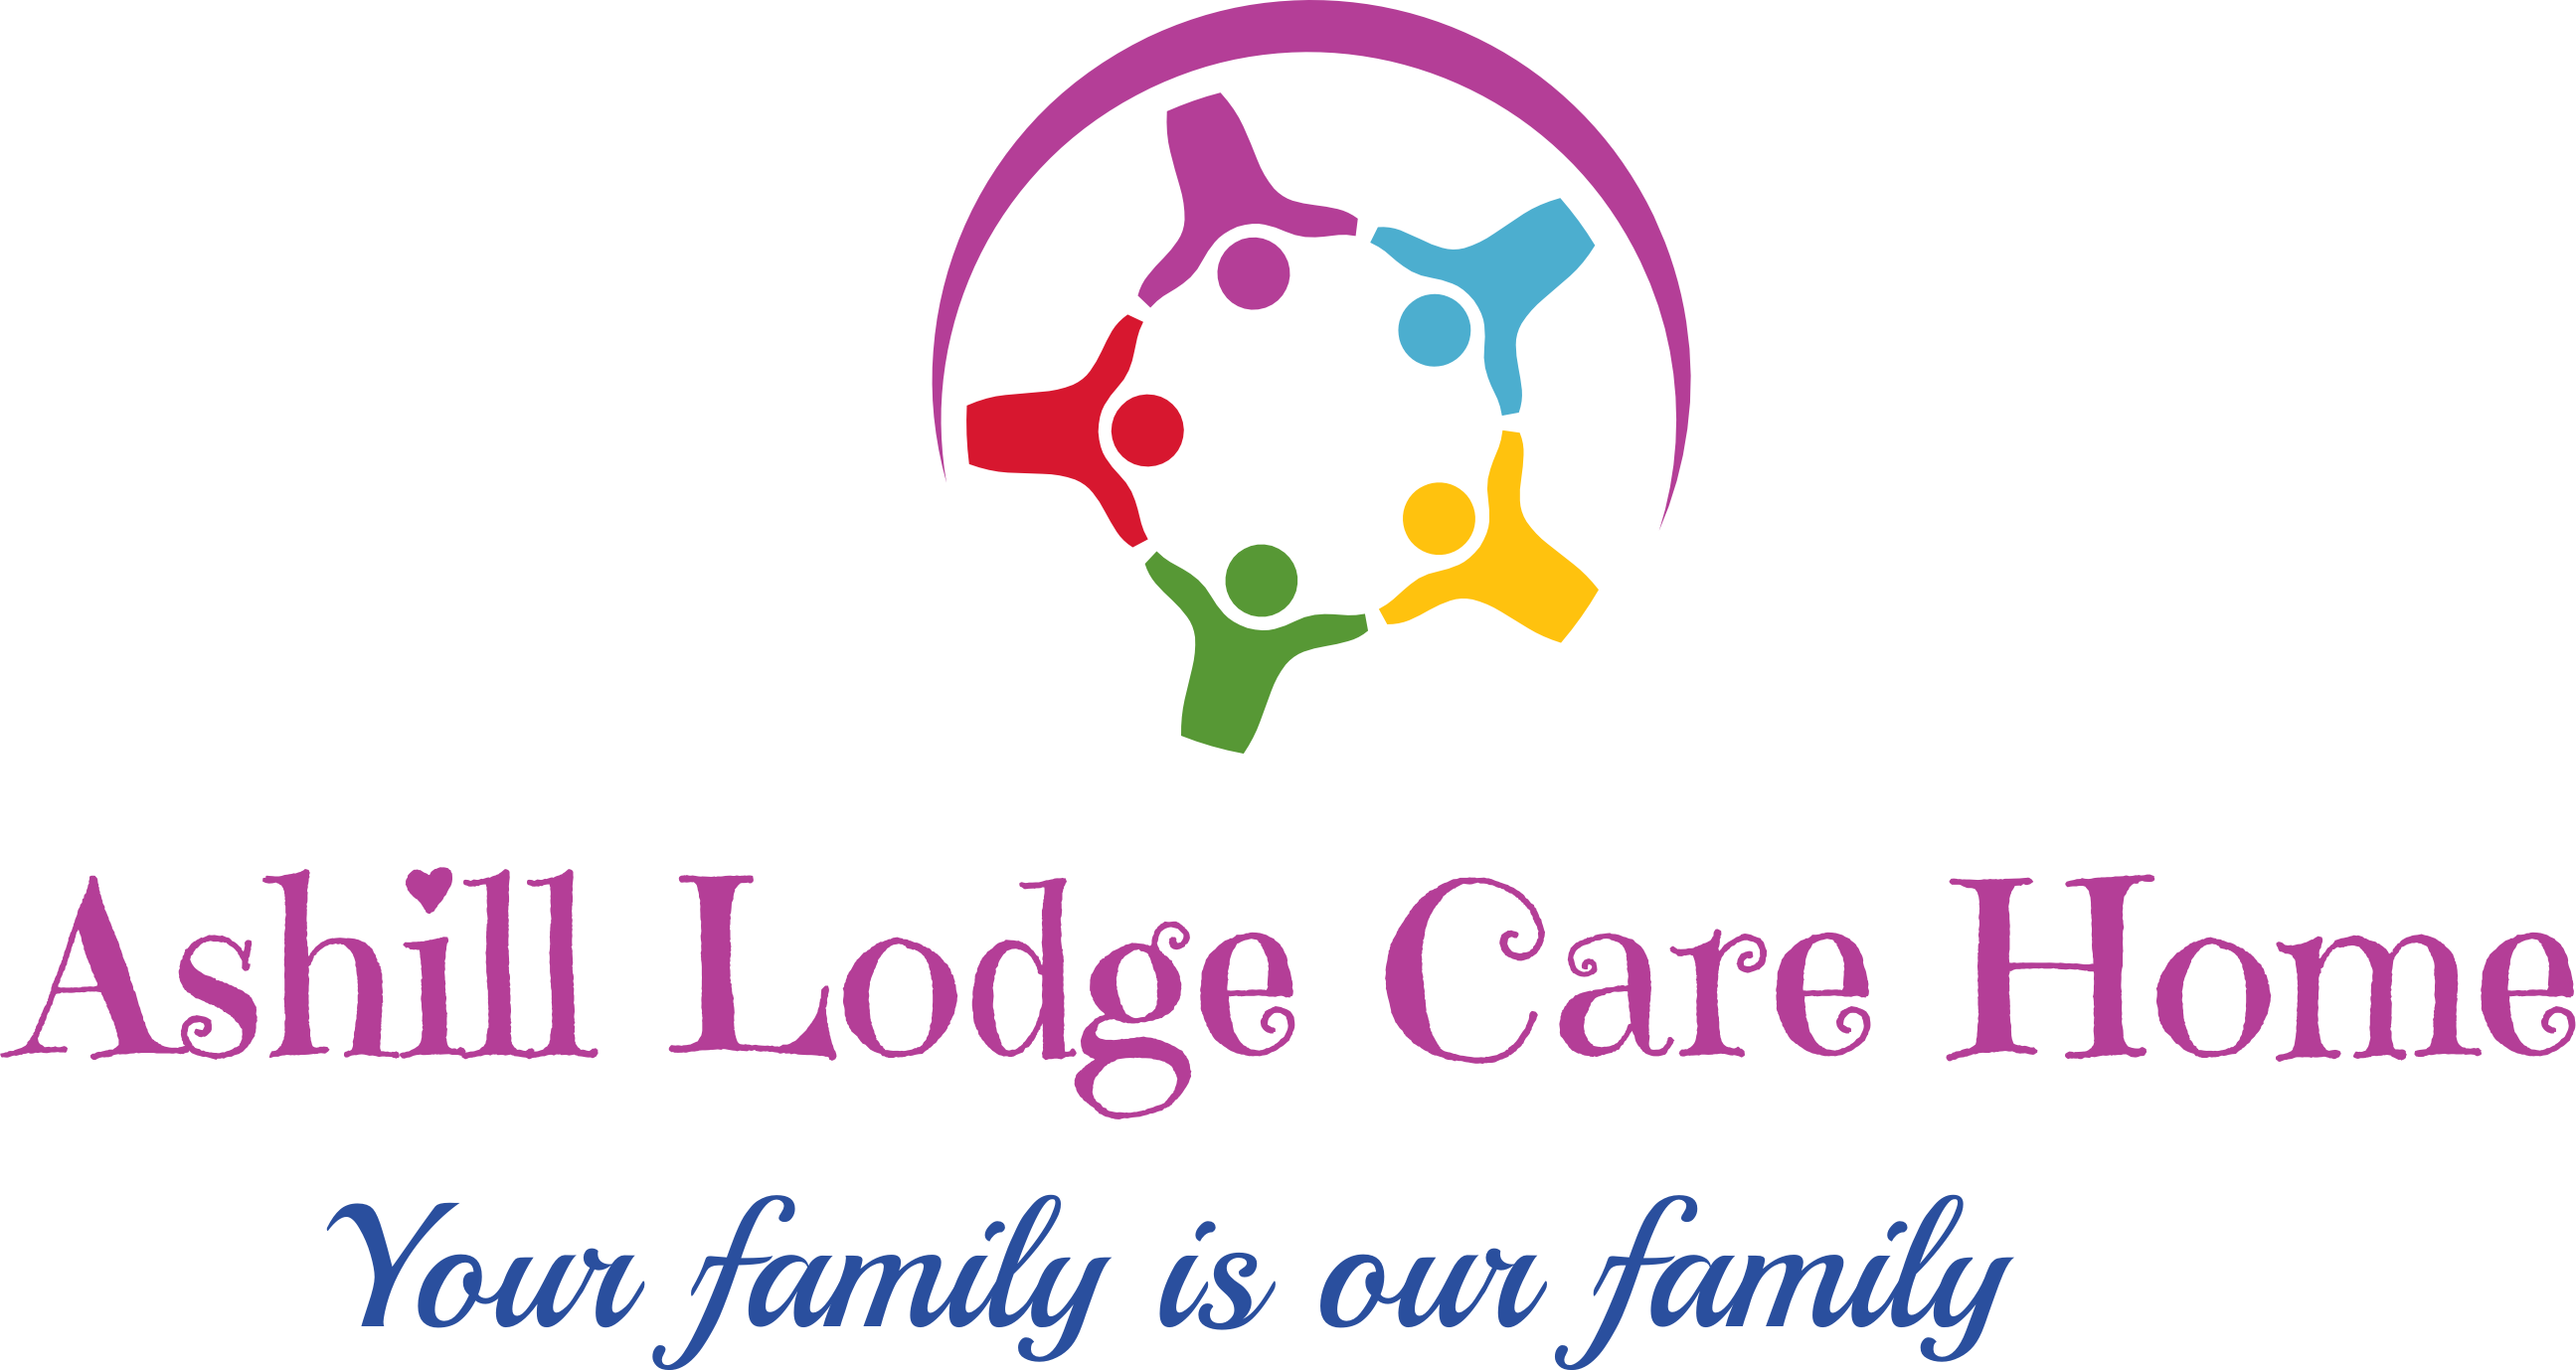 Ashill Lodge Care Home